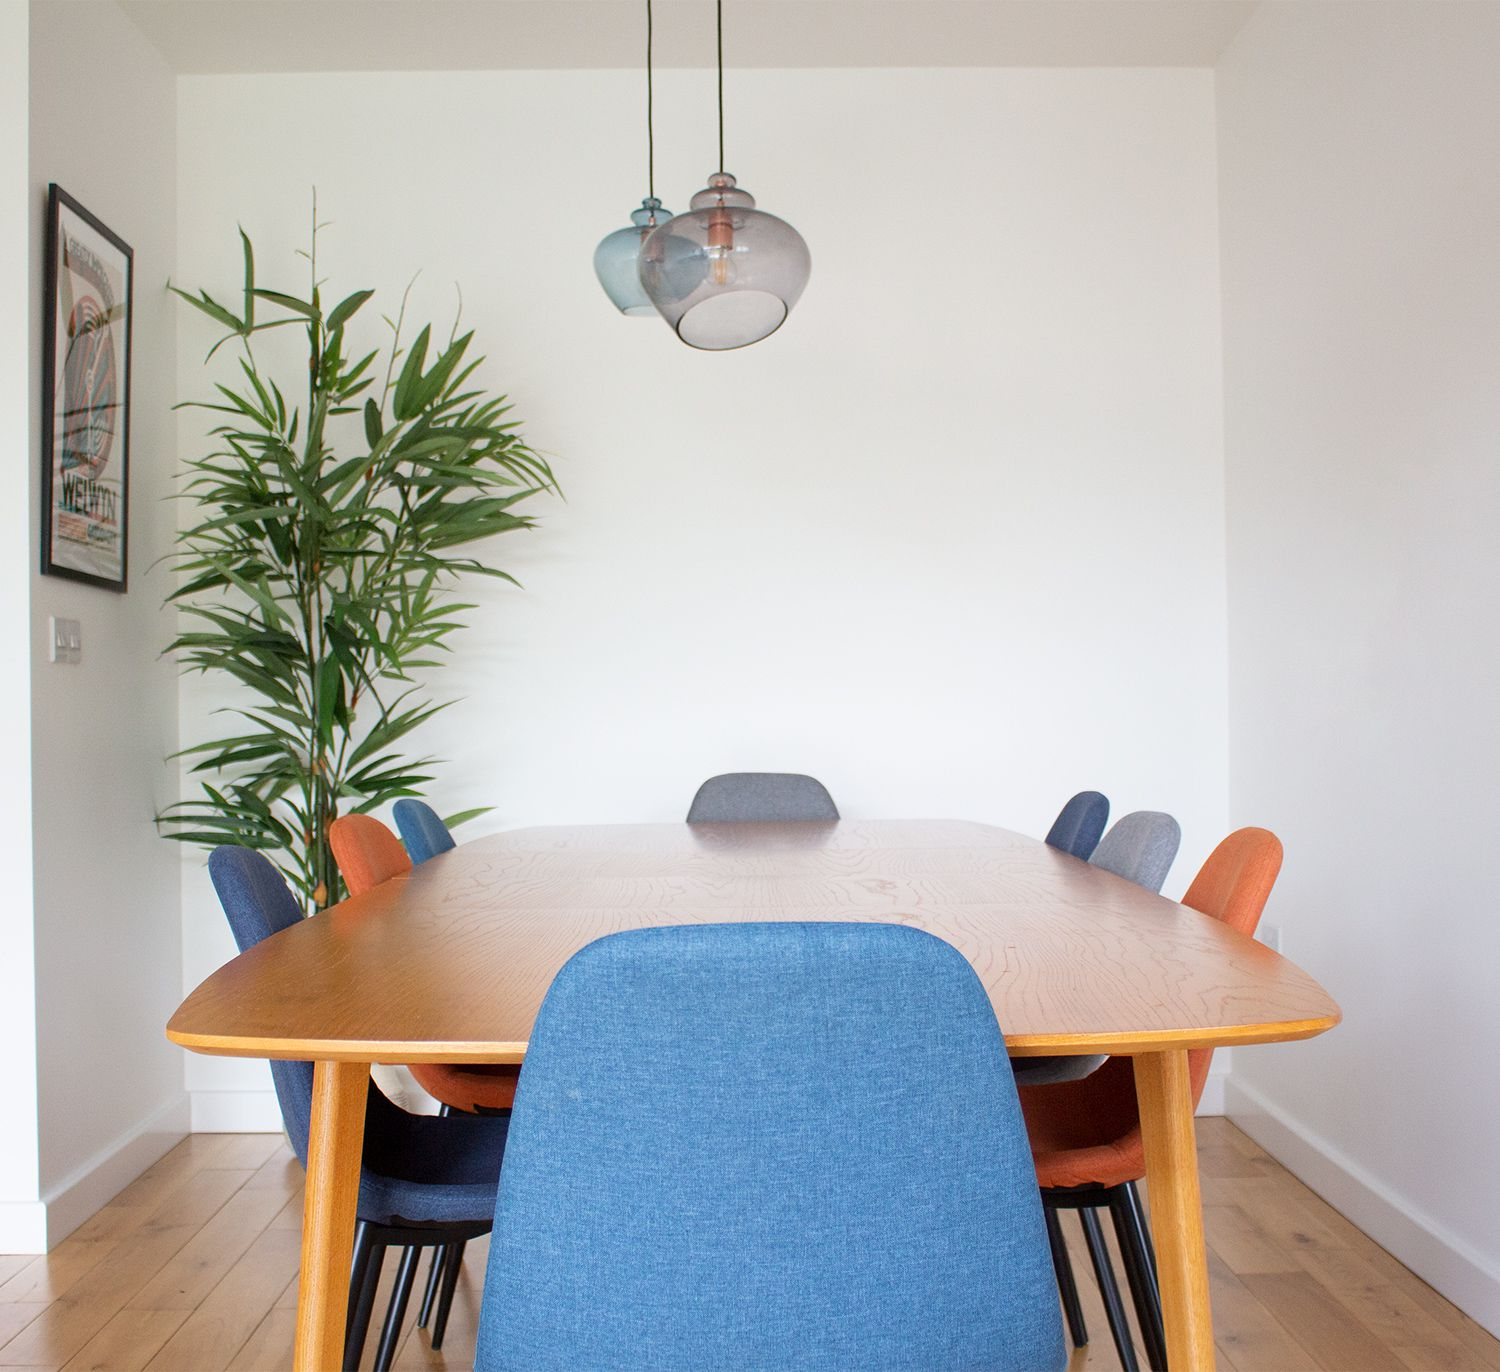 A photo of the mid century style dining table with upholstered chairs in blue, orange and grey.